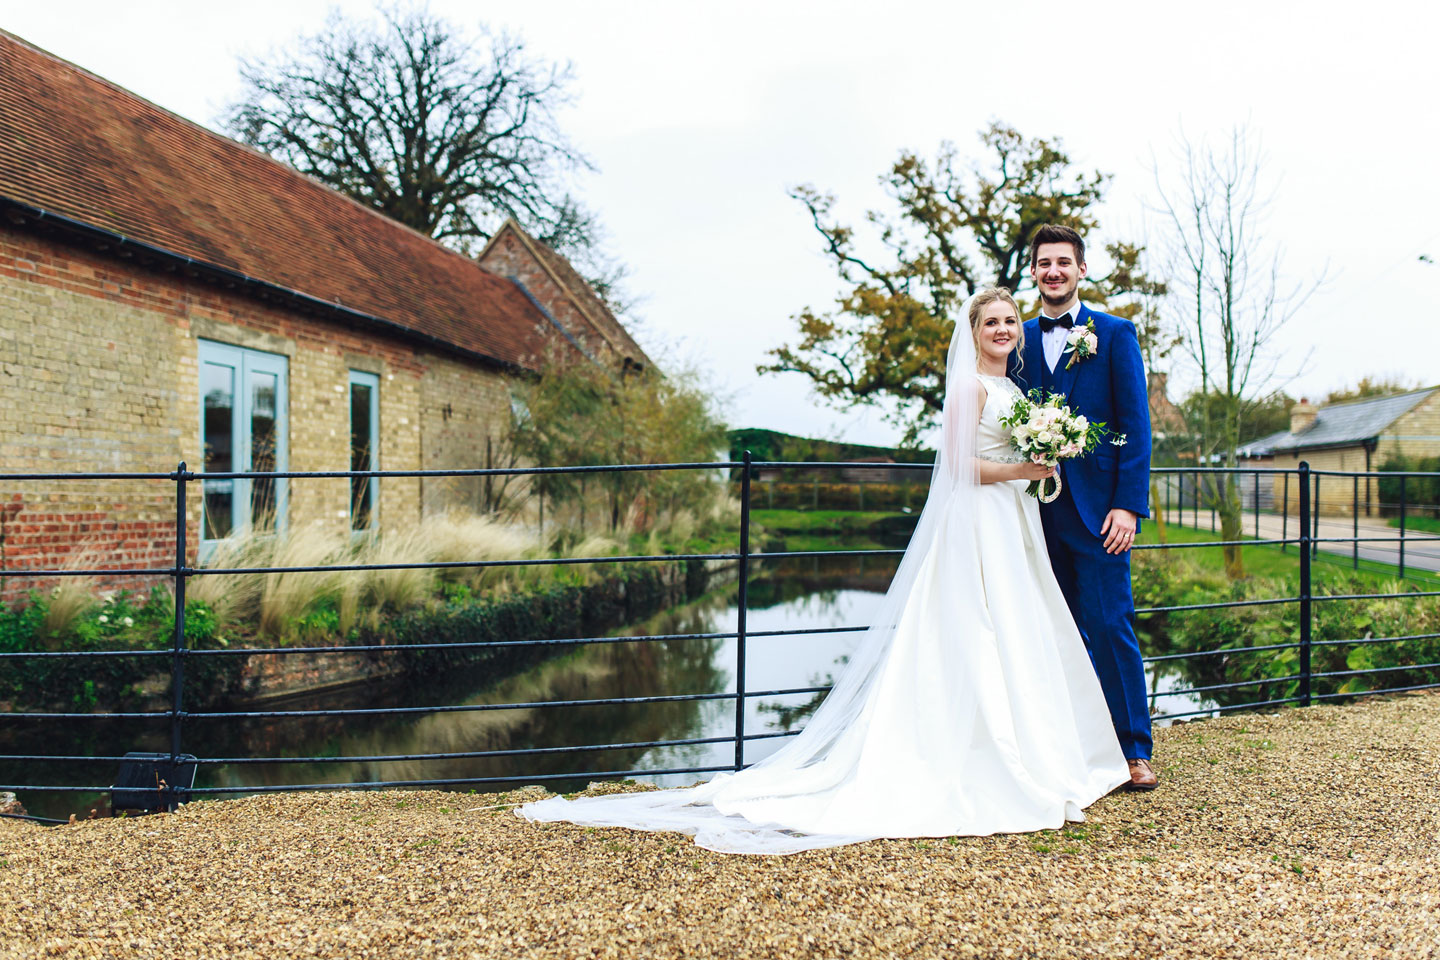 The bride and groom stand by the pretty moat at Bassmead Manor Barns